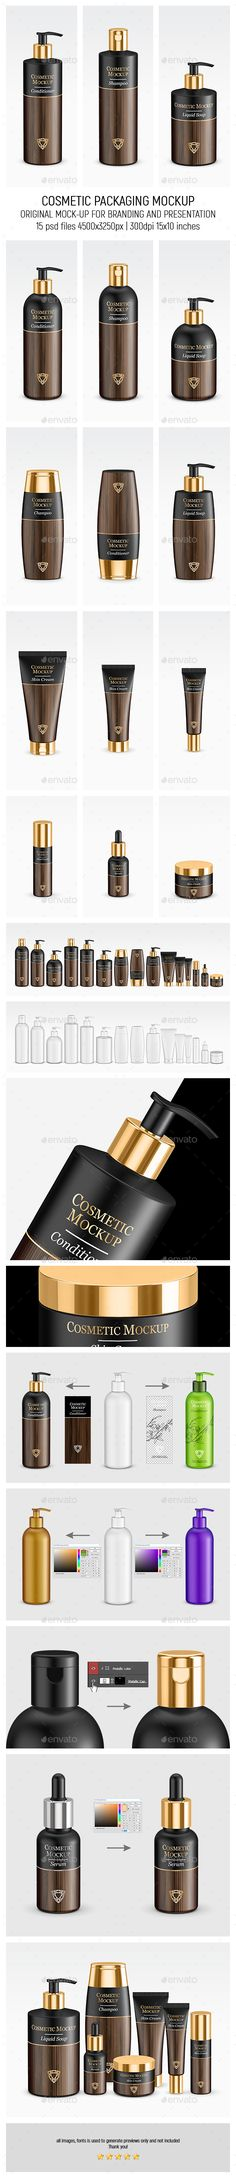 Gold Cosmetic Packaging #Mock-up - Beauty #Packaging Download here: https://graphicriver.net/item/gold-cosmetic-packaging-mockup/19623673?ref=alena994